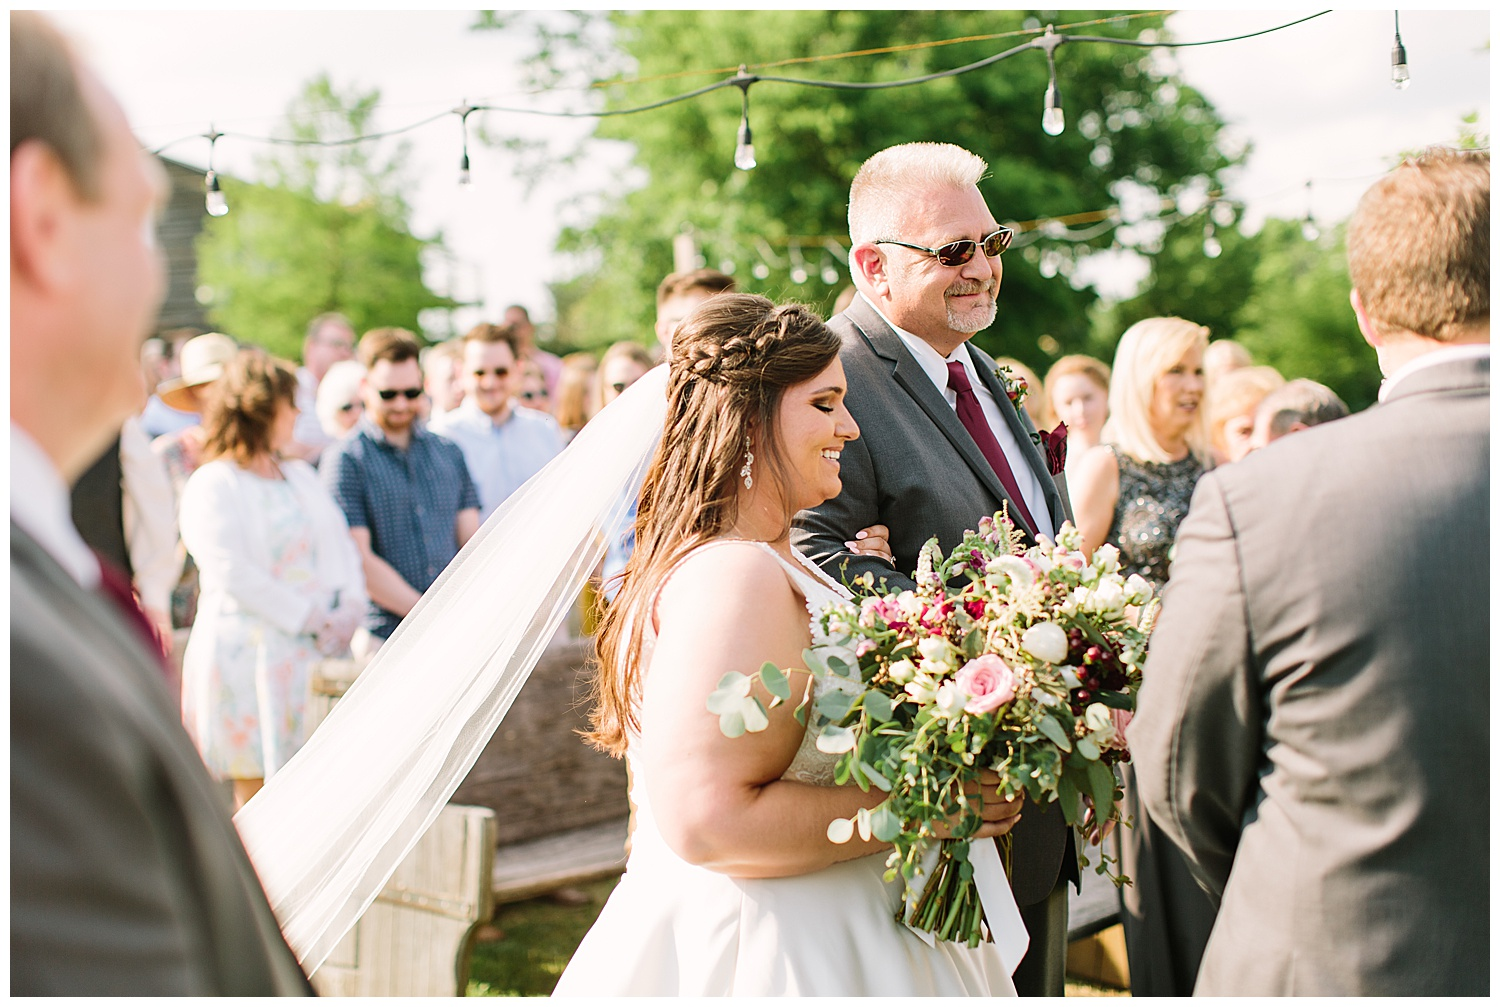 trent.and.kendra.photography.eden.springs.farmstead.shelbyville.wedding-67.jpg